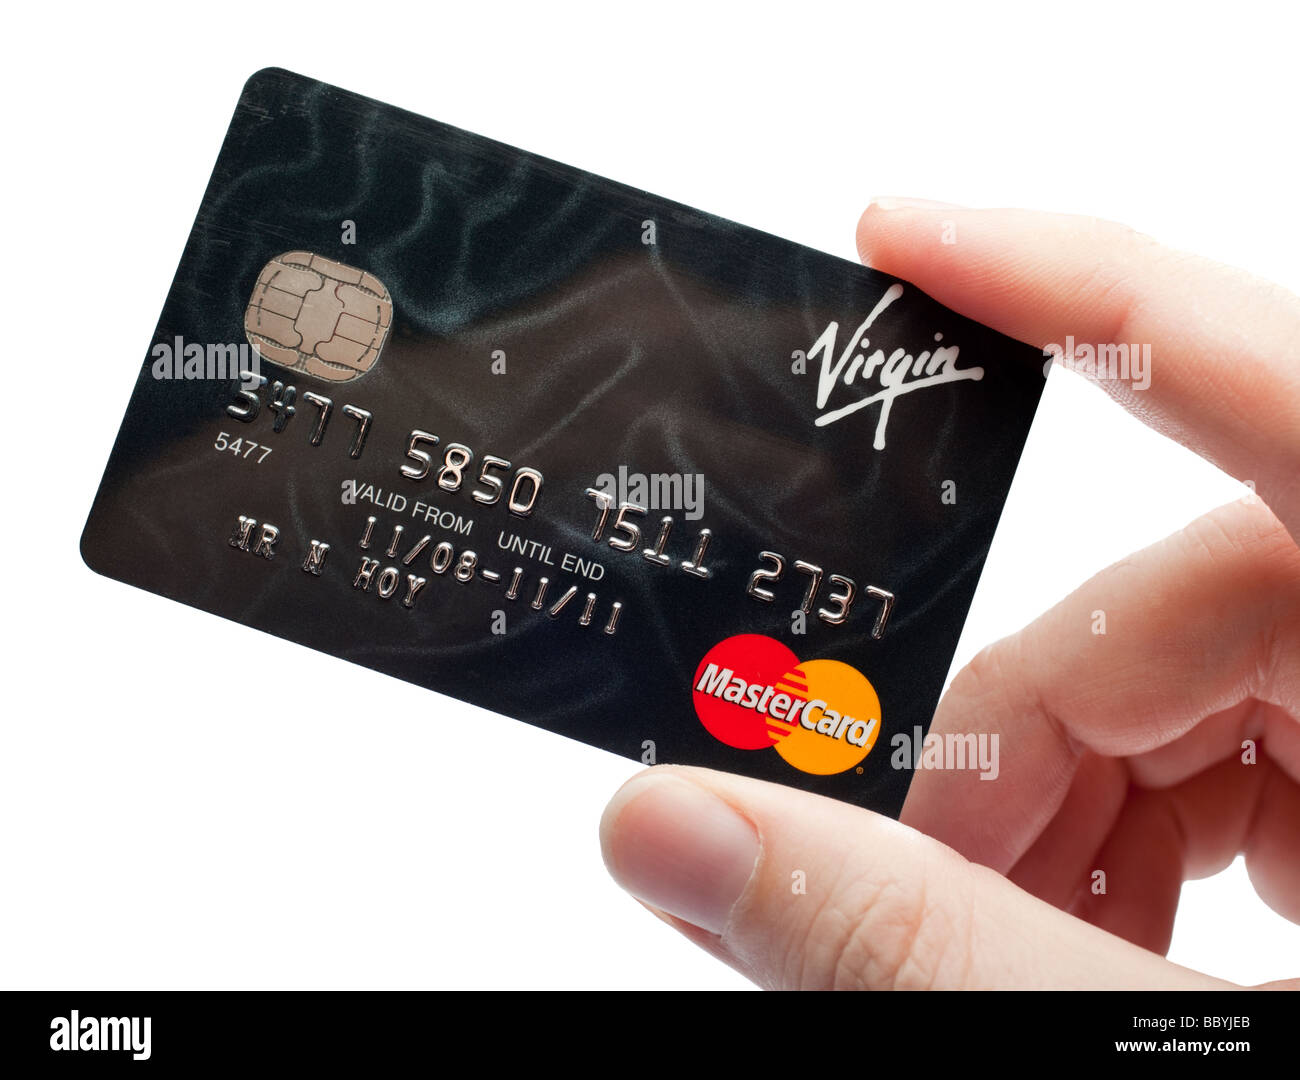 Credit card, hand holding - Stock Image